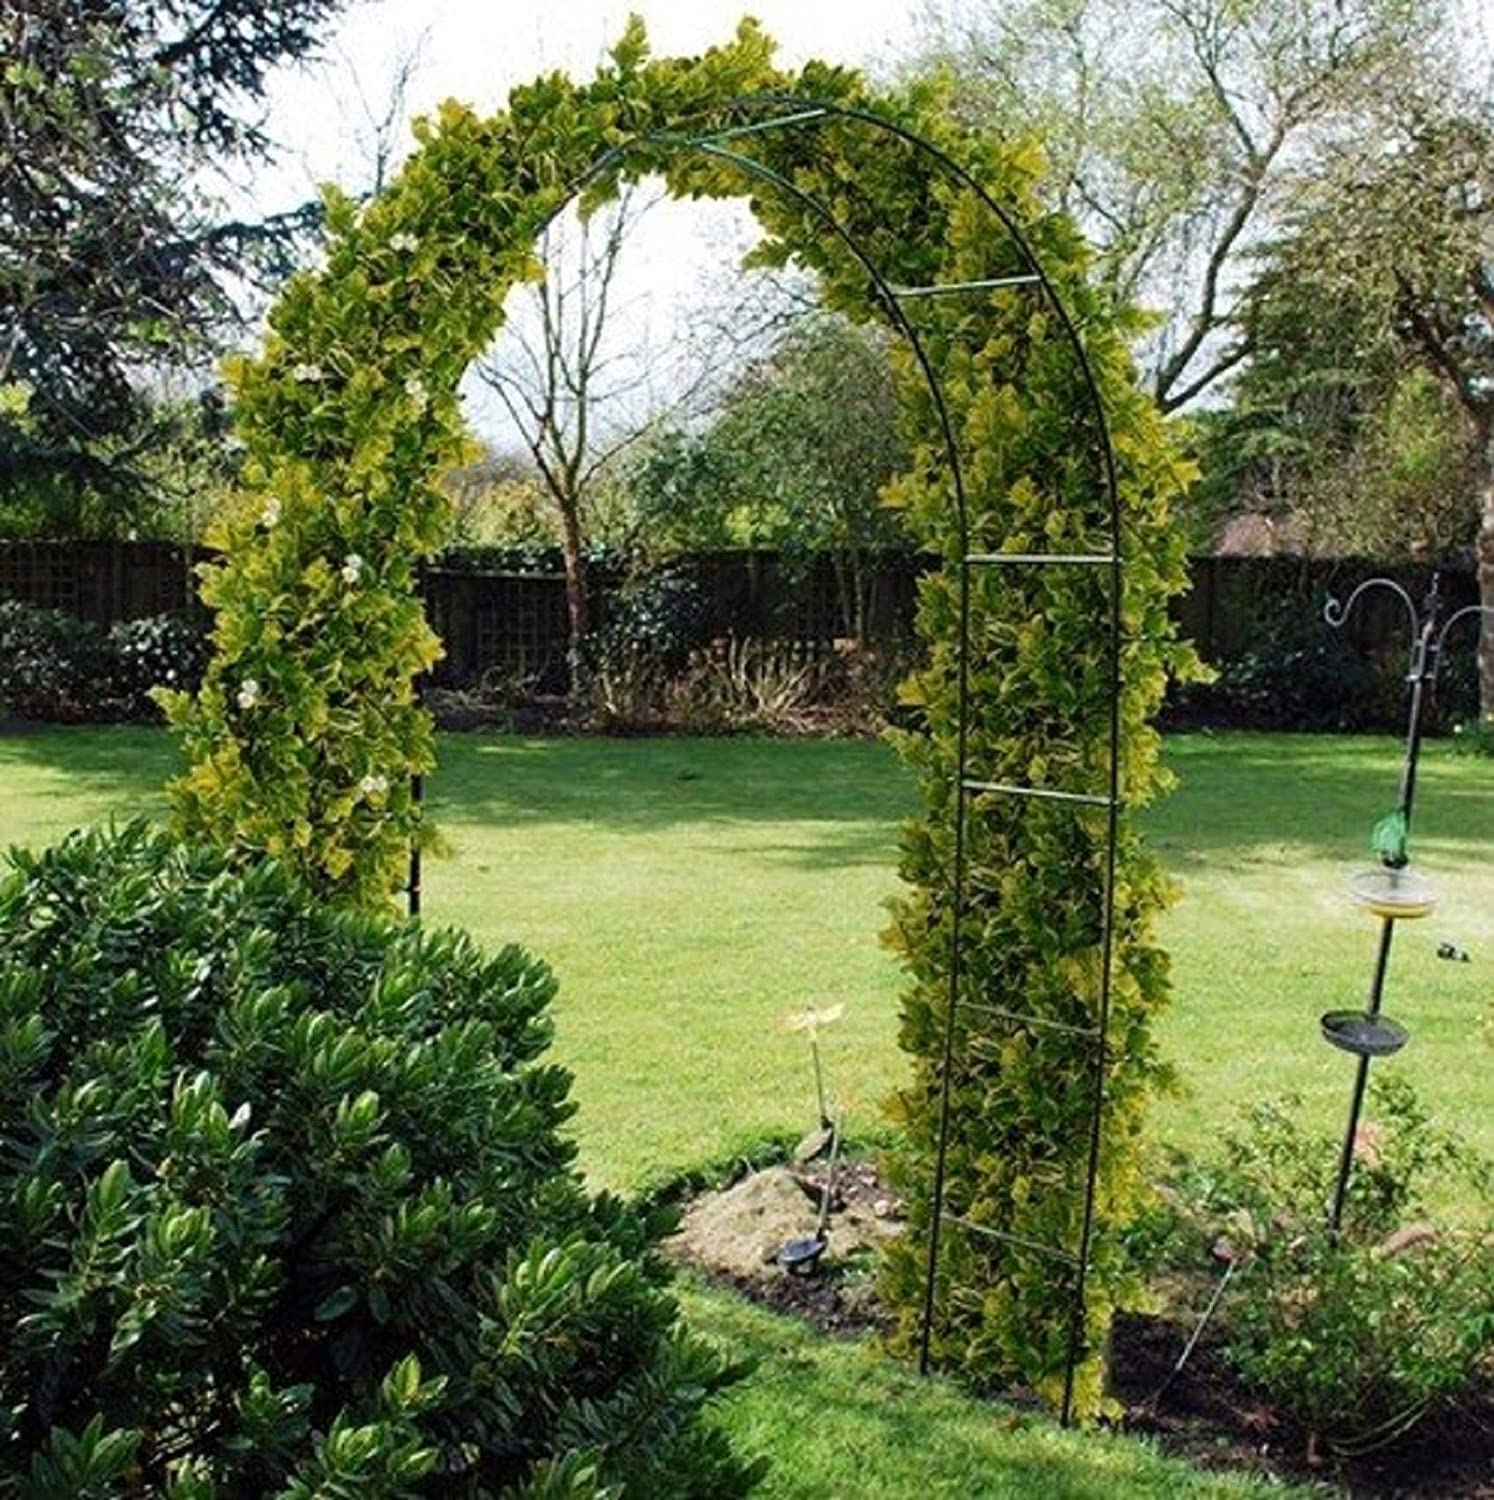 New Self Assembly Garden Arch For Climbing Plants & Roses - Free Postage Shamz